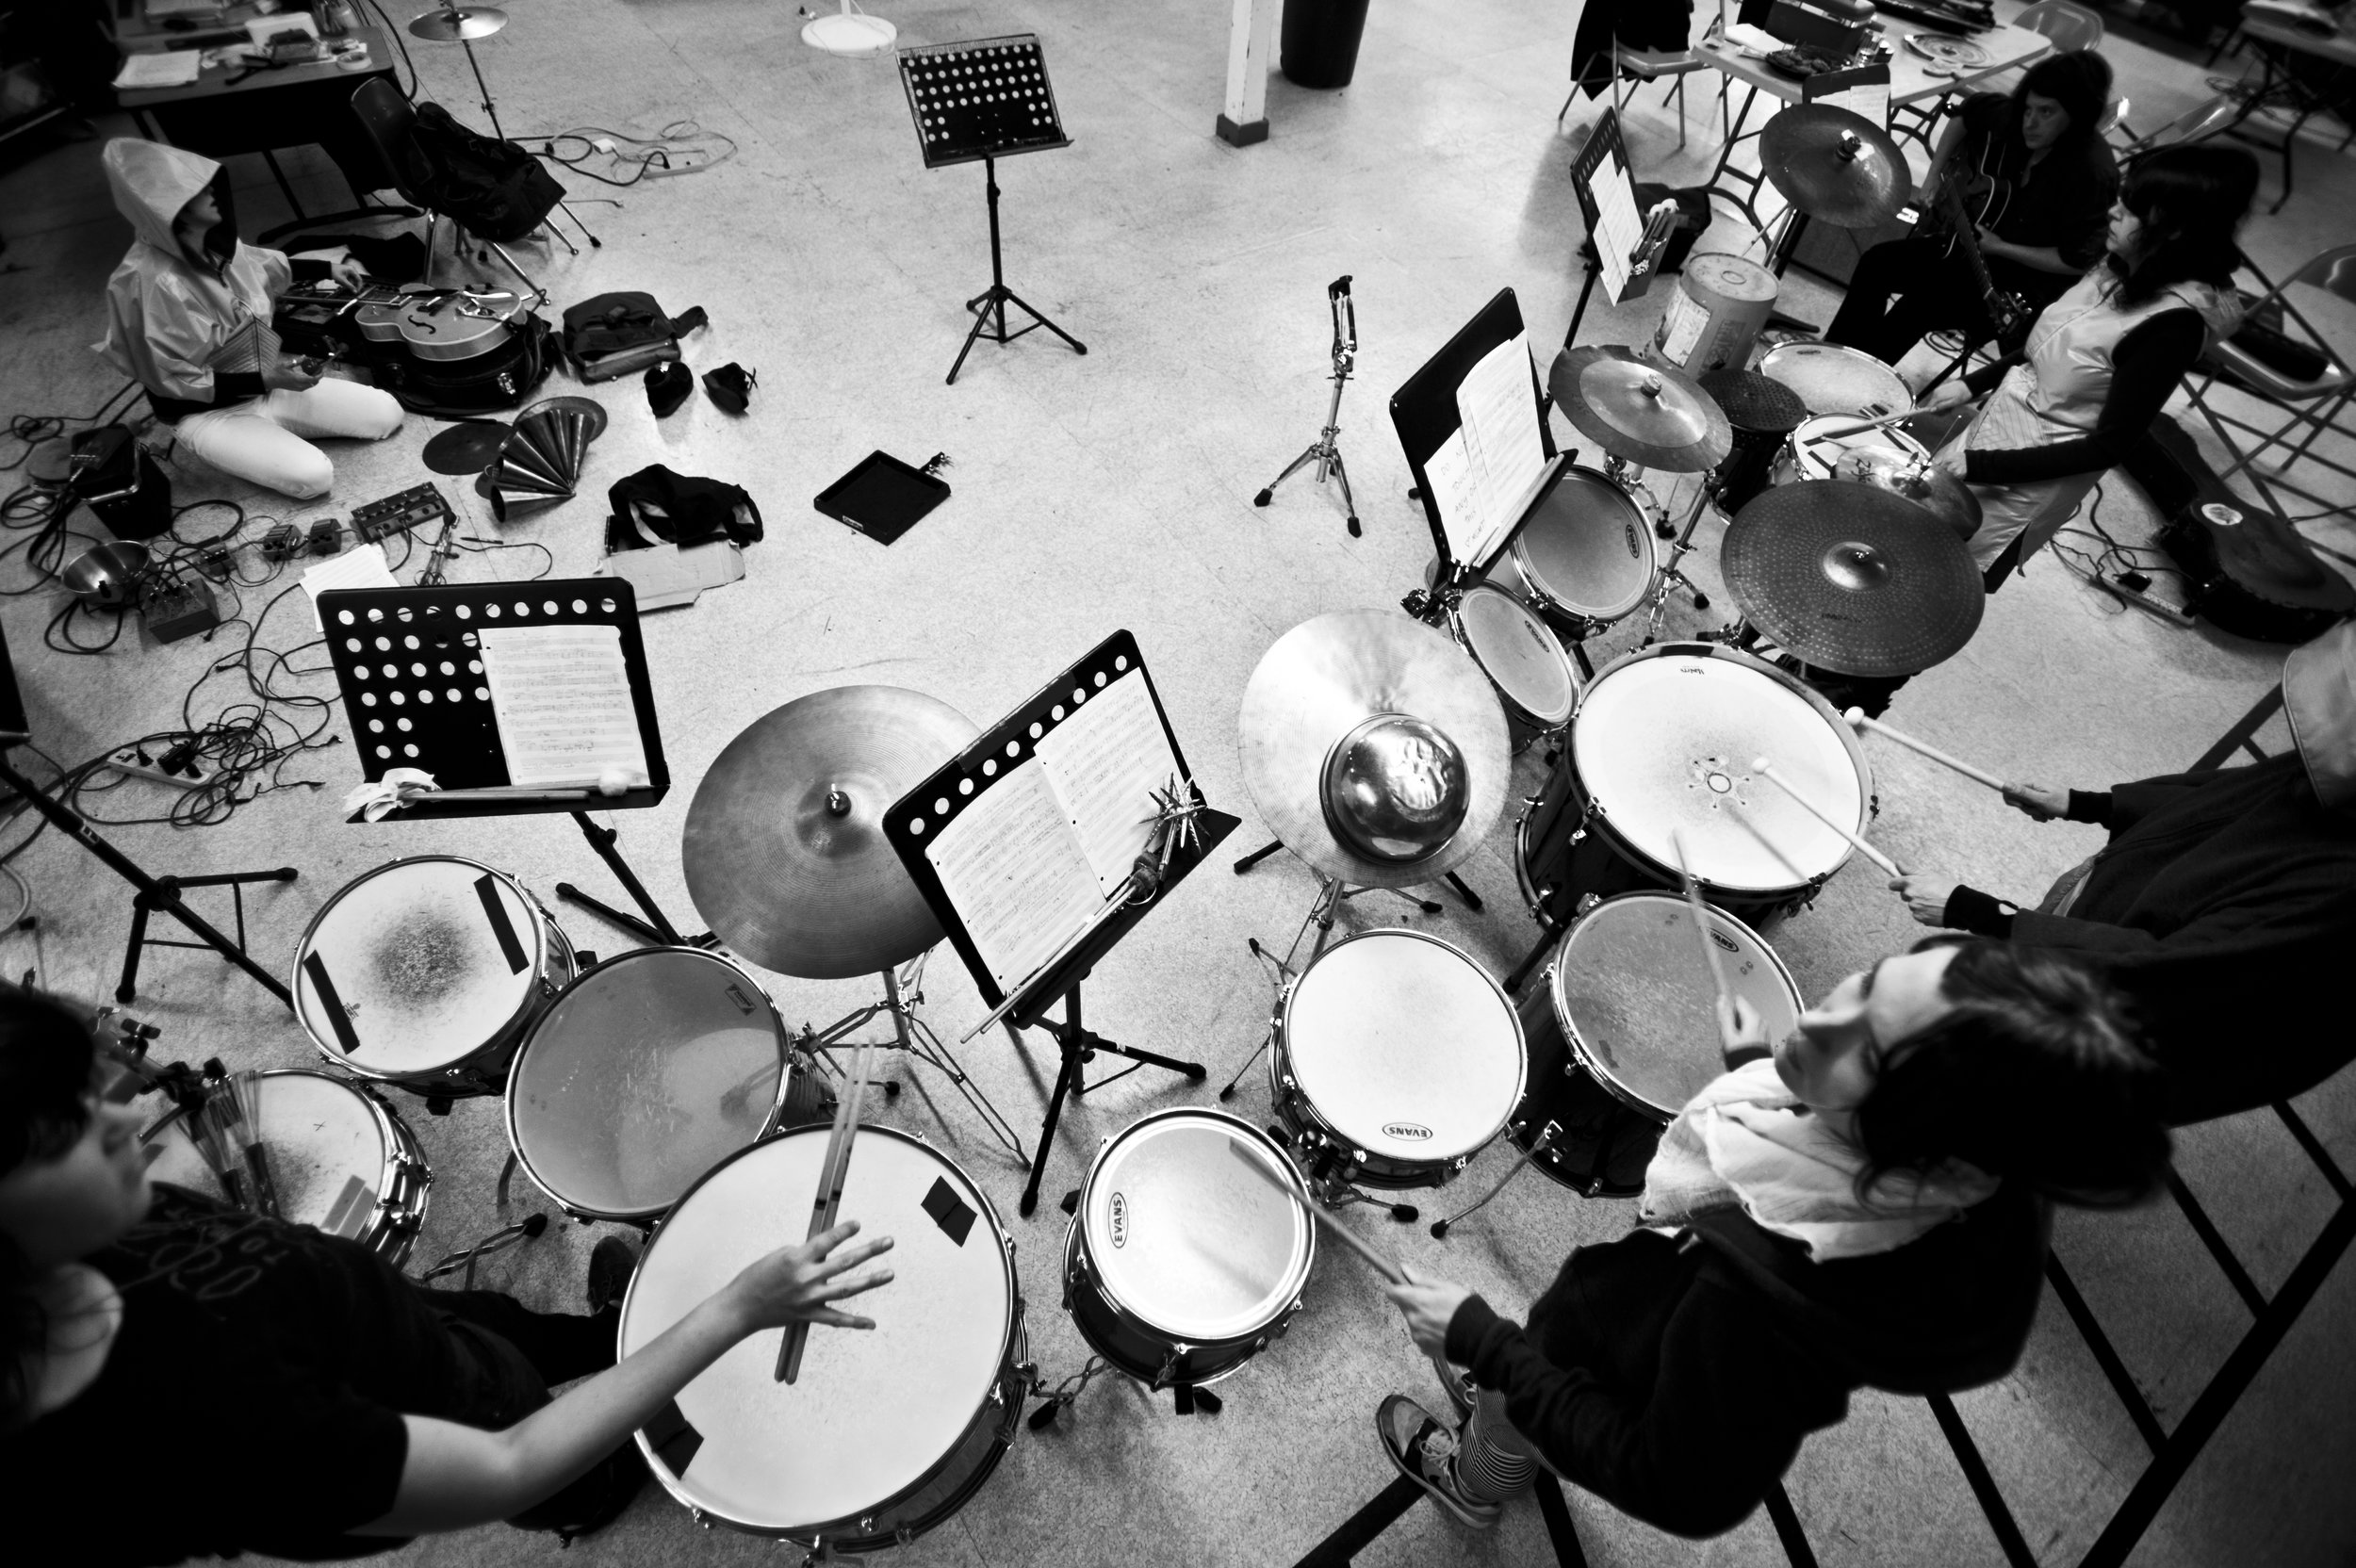 Secret Drum Band / photo by Martin Evans